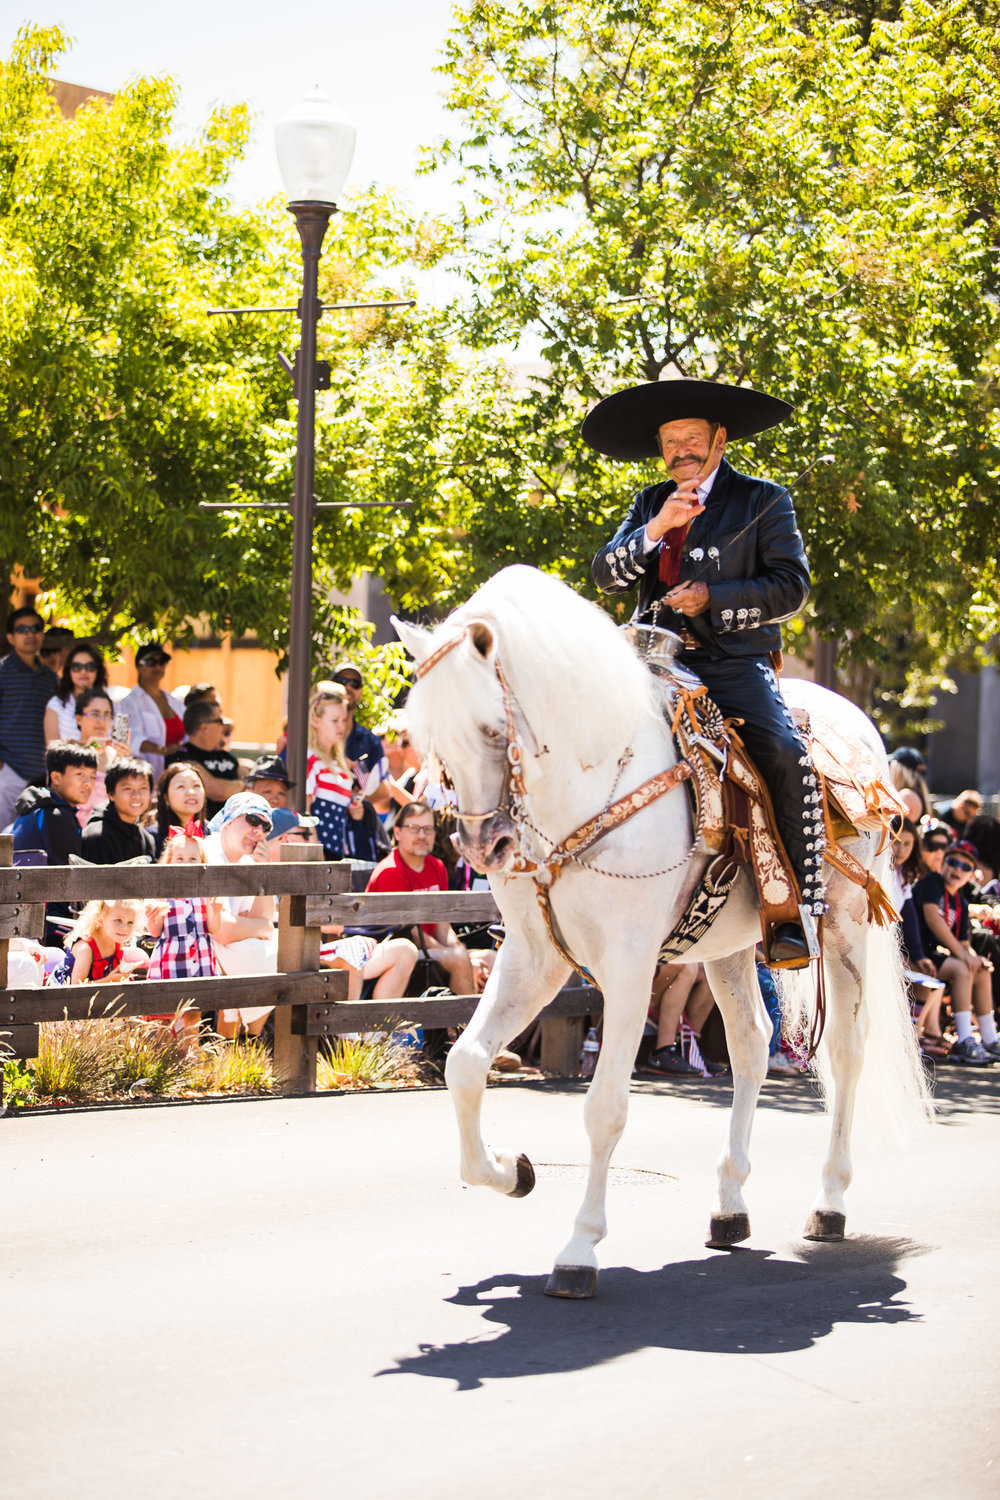 Archer_Inspired_Photography_Morgan_Hill_California_4th_of_july_parade-152.jpg